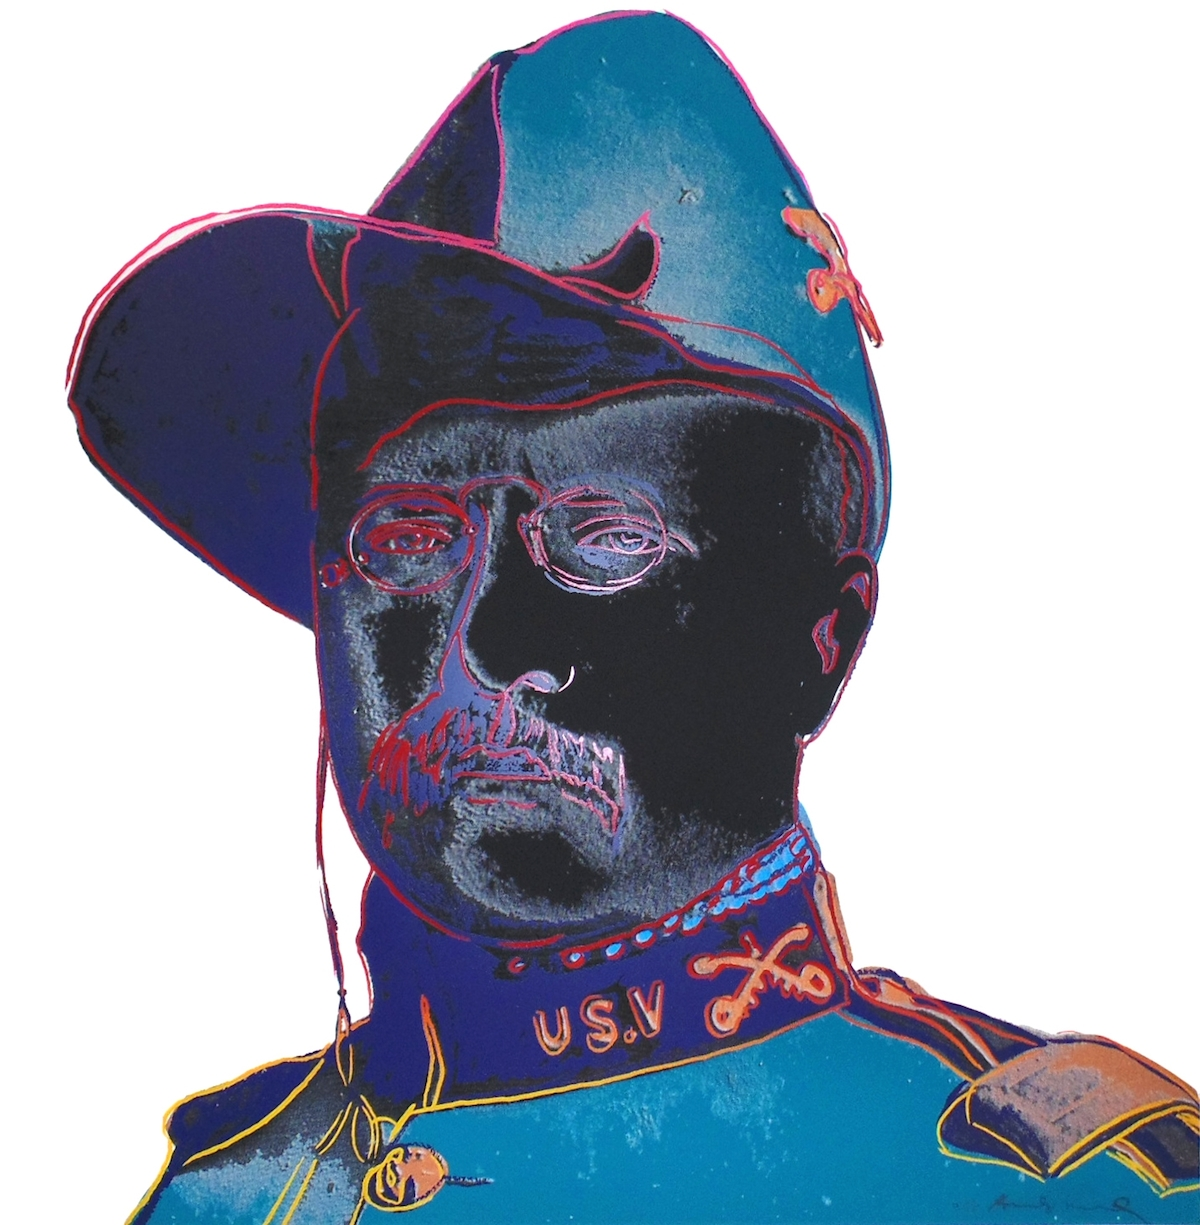 Teddy Roosevelt by Andy Warhol